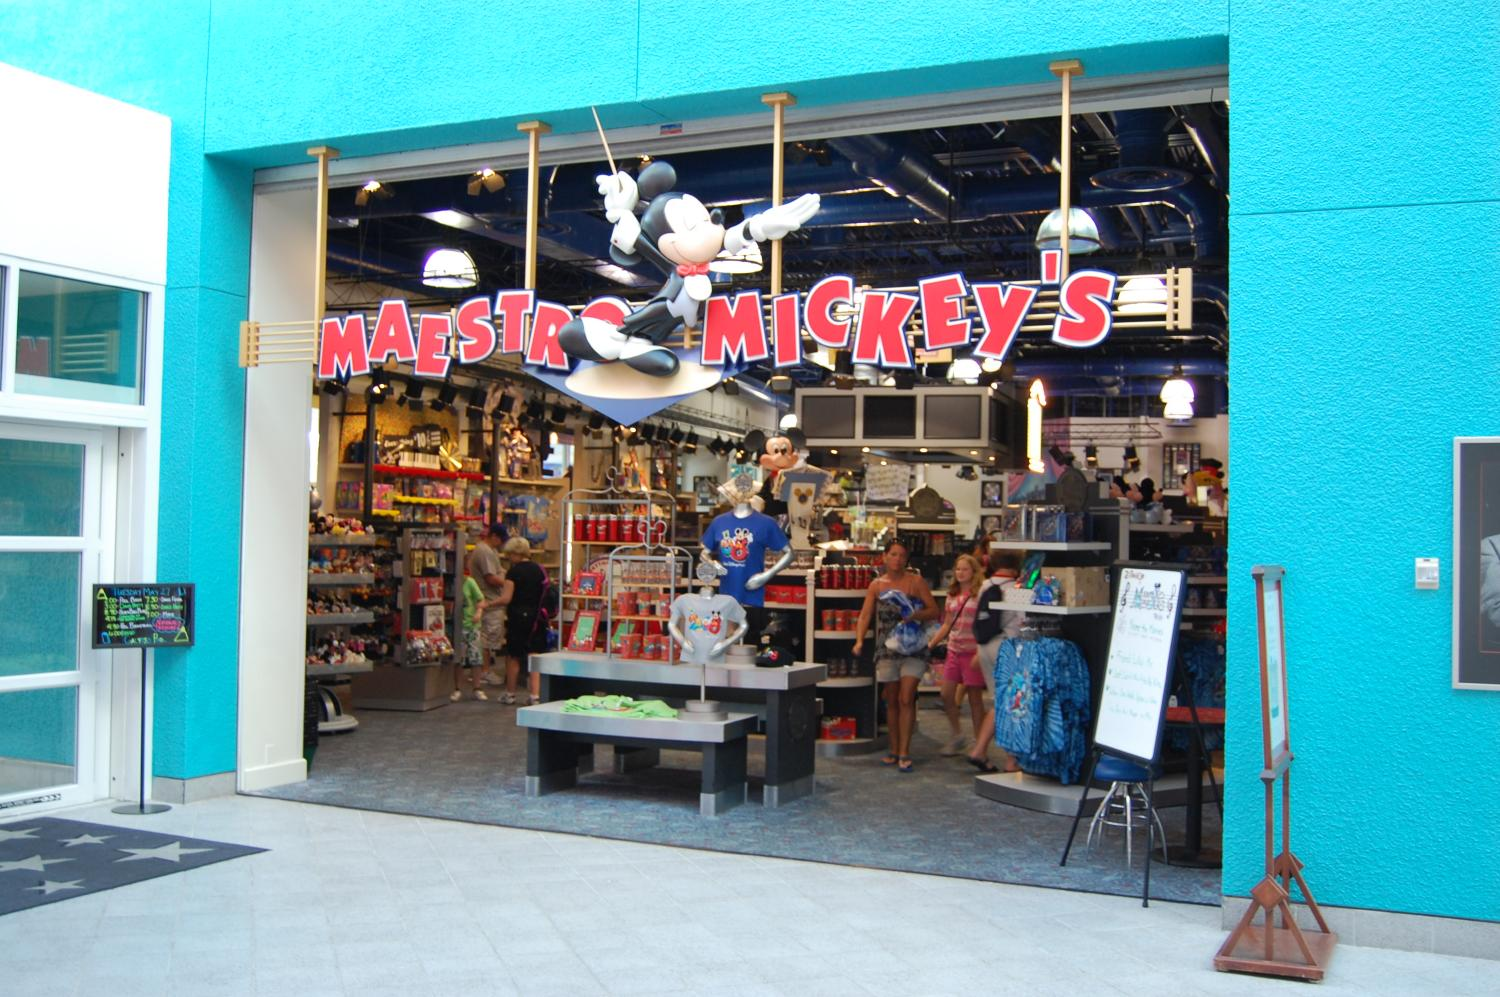 Maestro Mickey's Gifts and Sundries